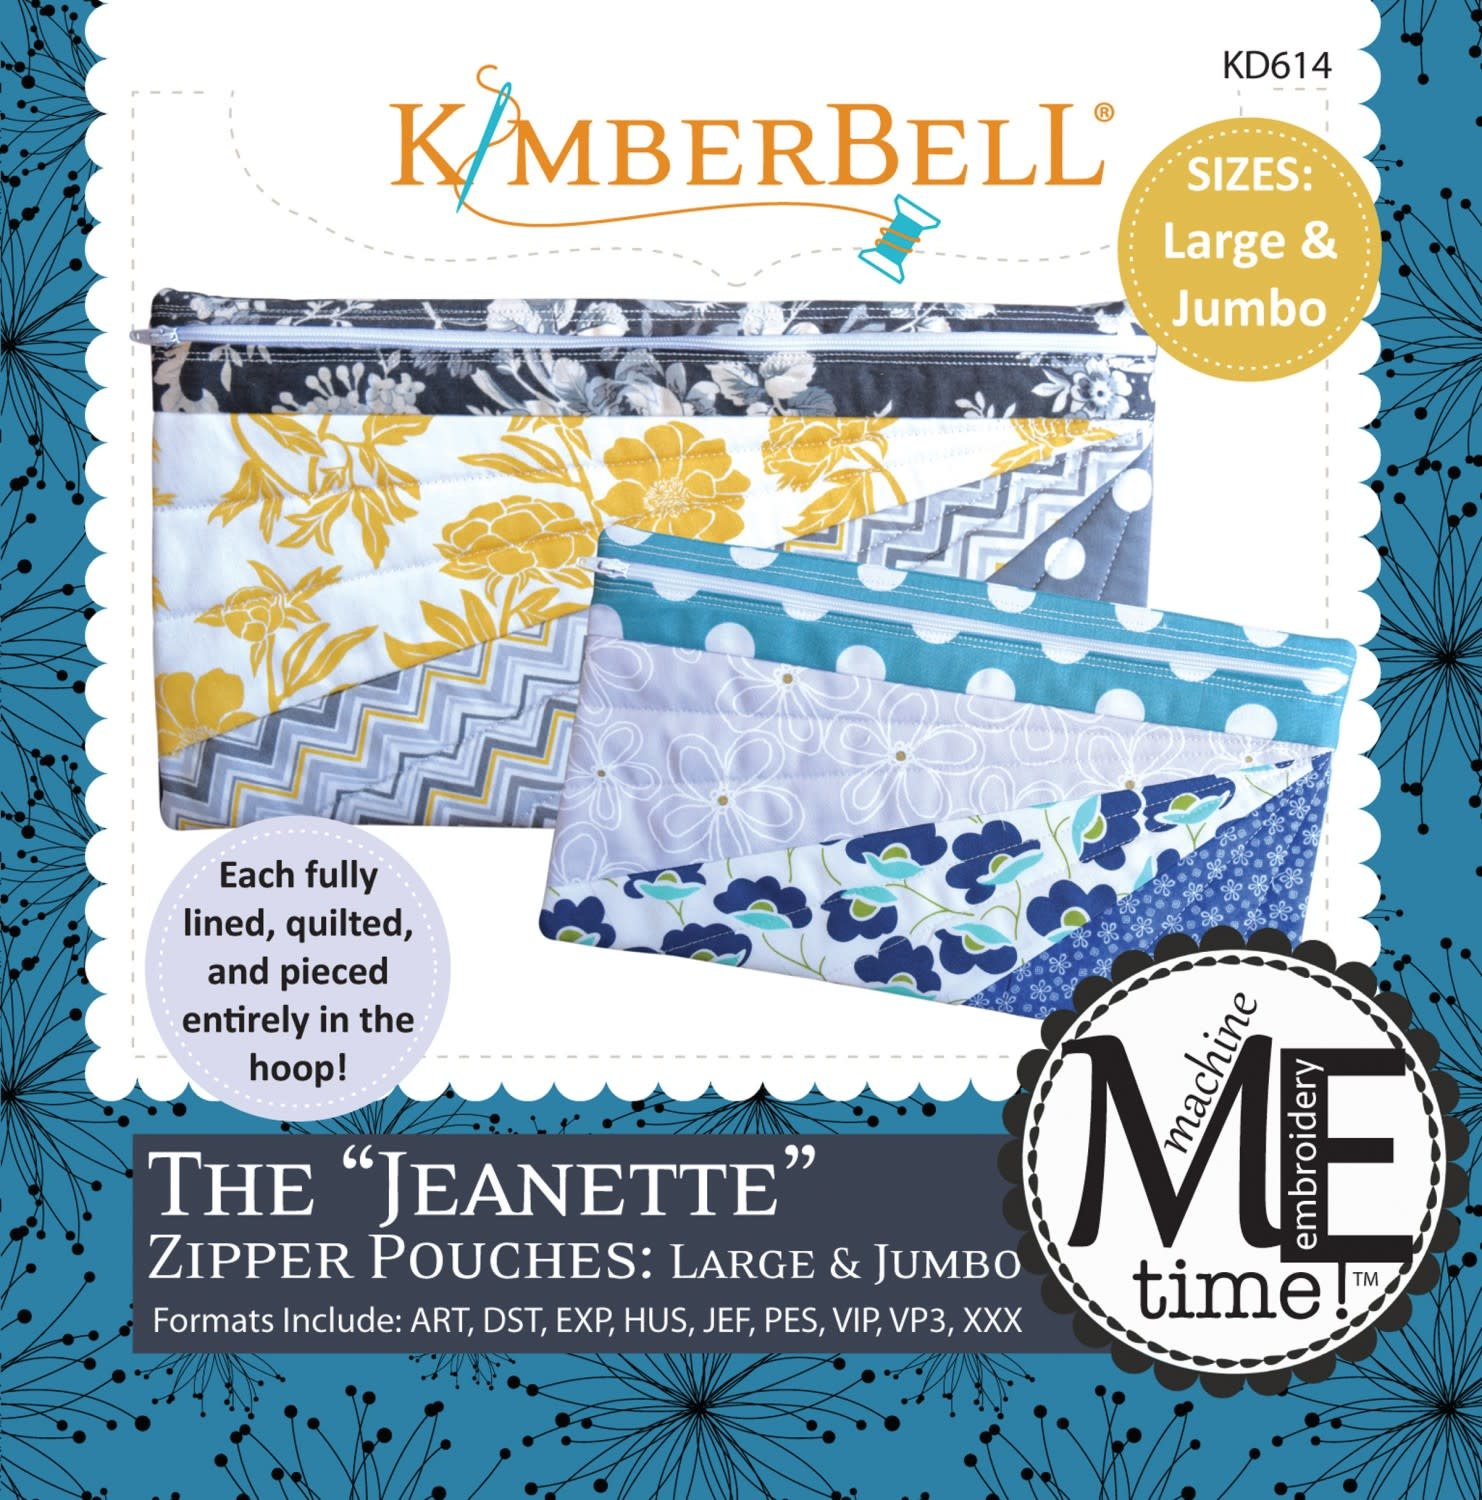 KIMBERBELL DESIGNS ME Time: The Jeanette Zipper Pouch: Large & Jumbo Embroidery CD